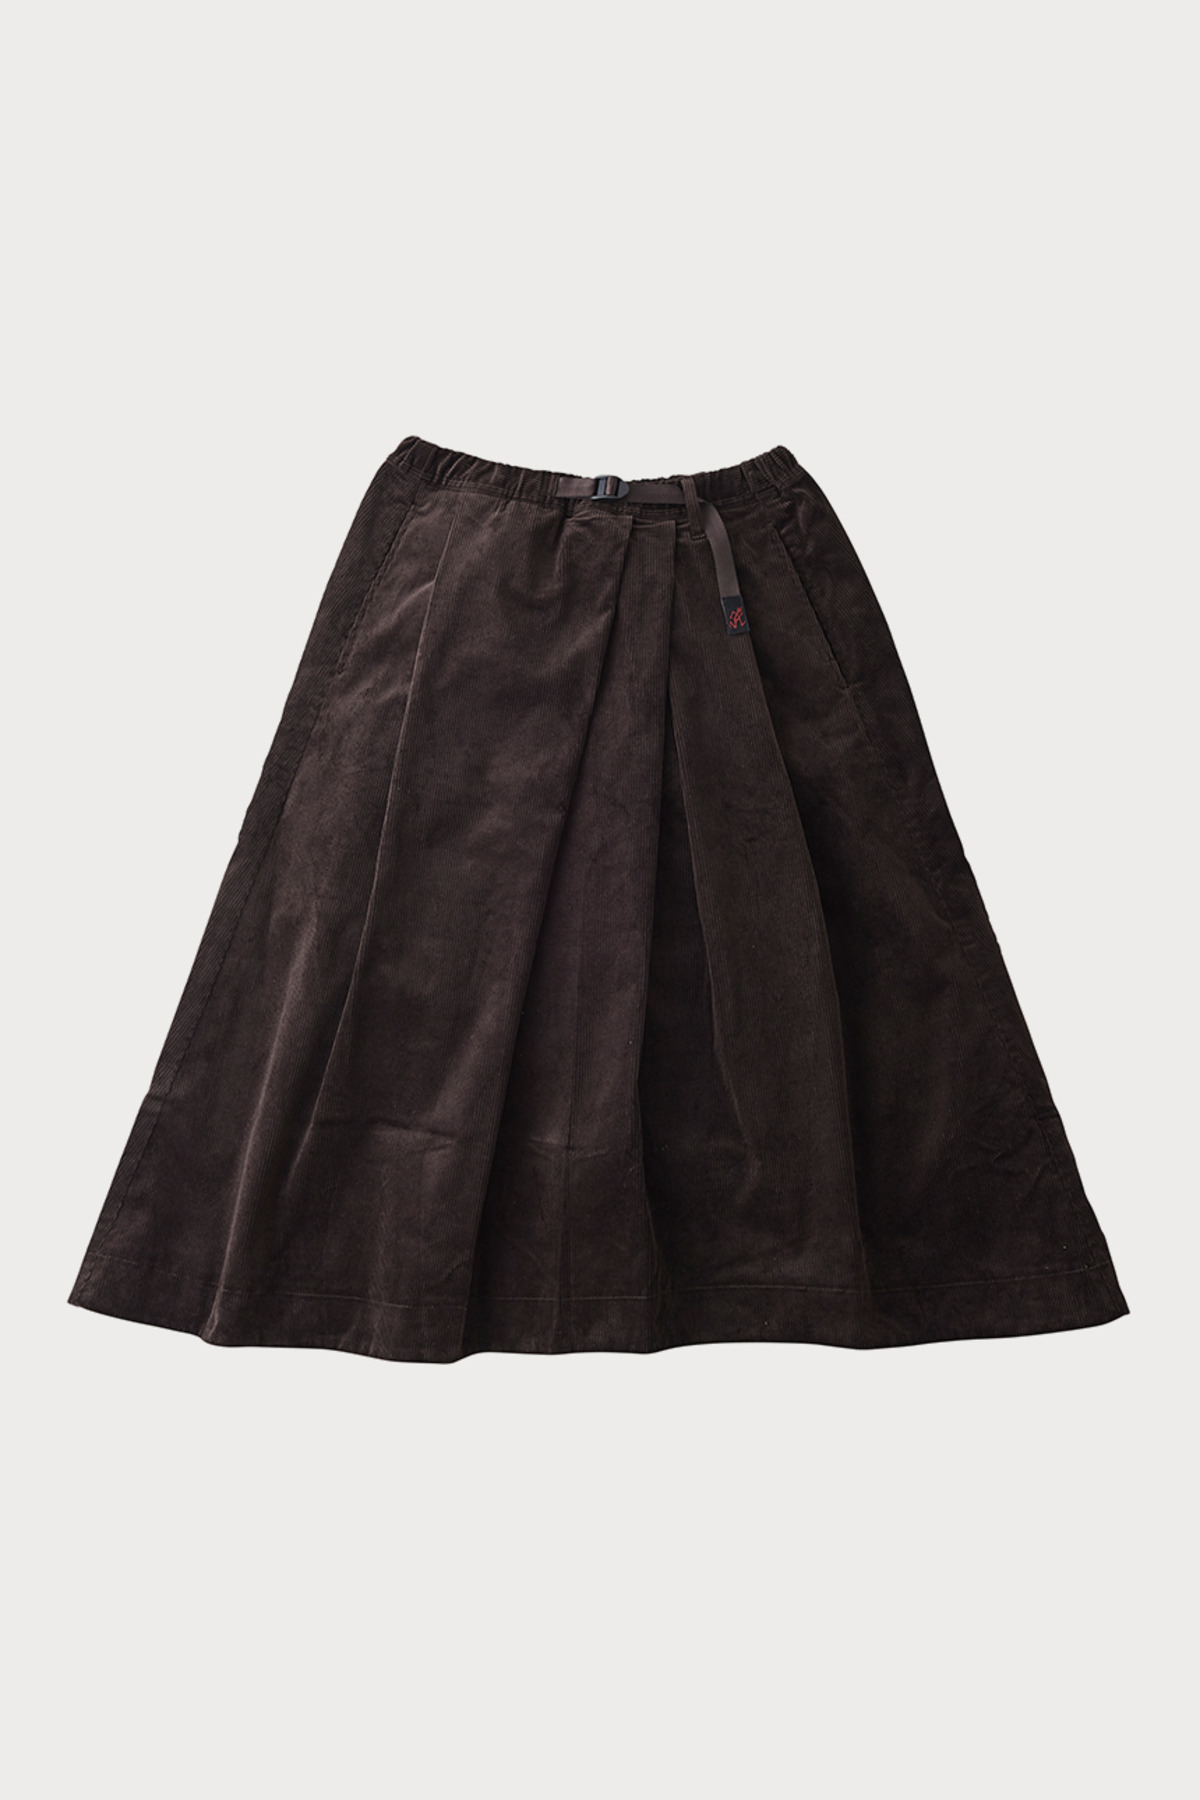 CORDUROY TALECUT SKIRT DARK BROWN